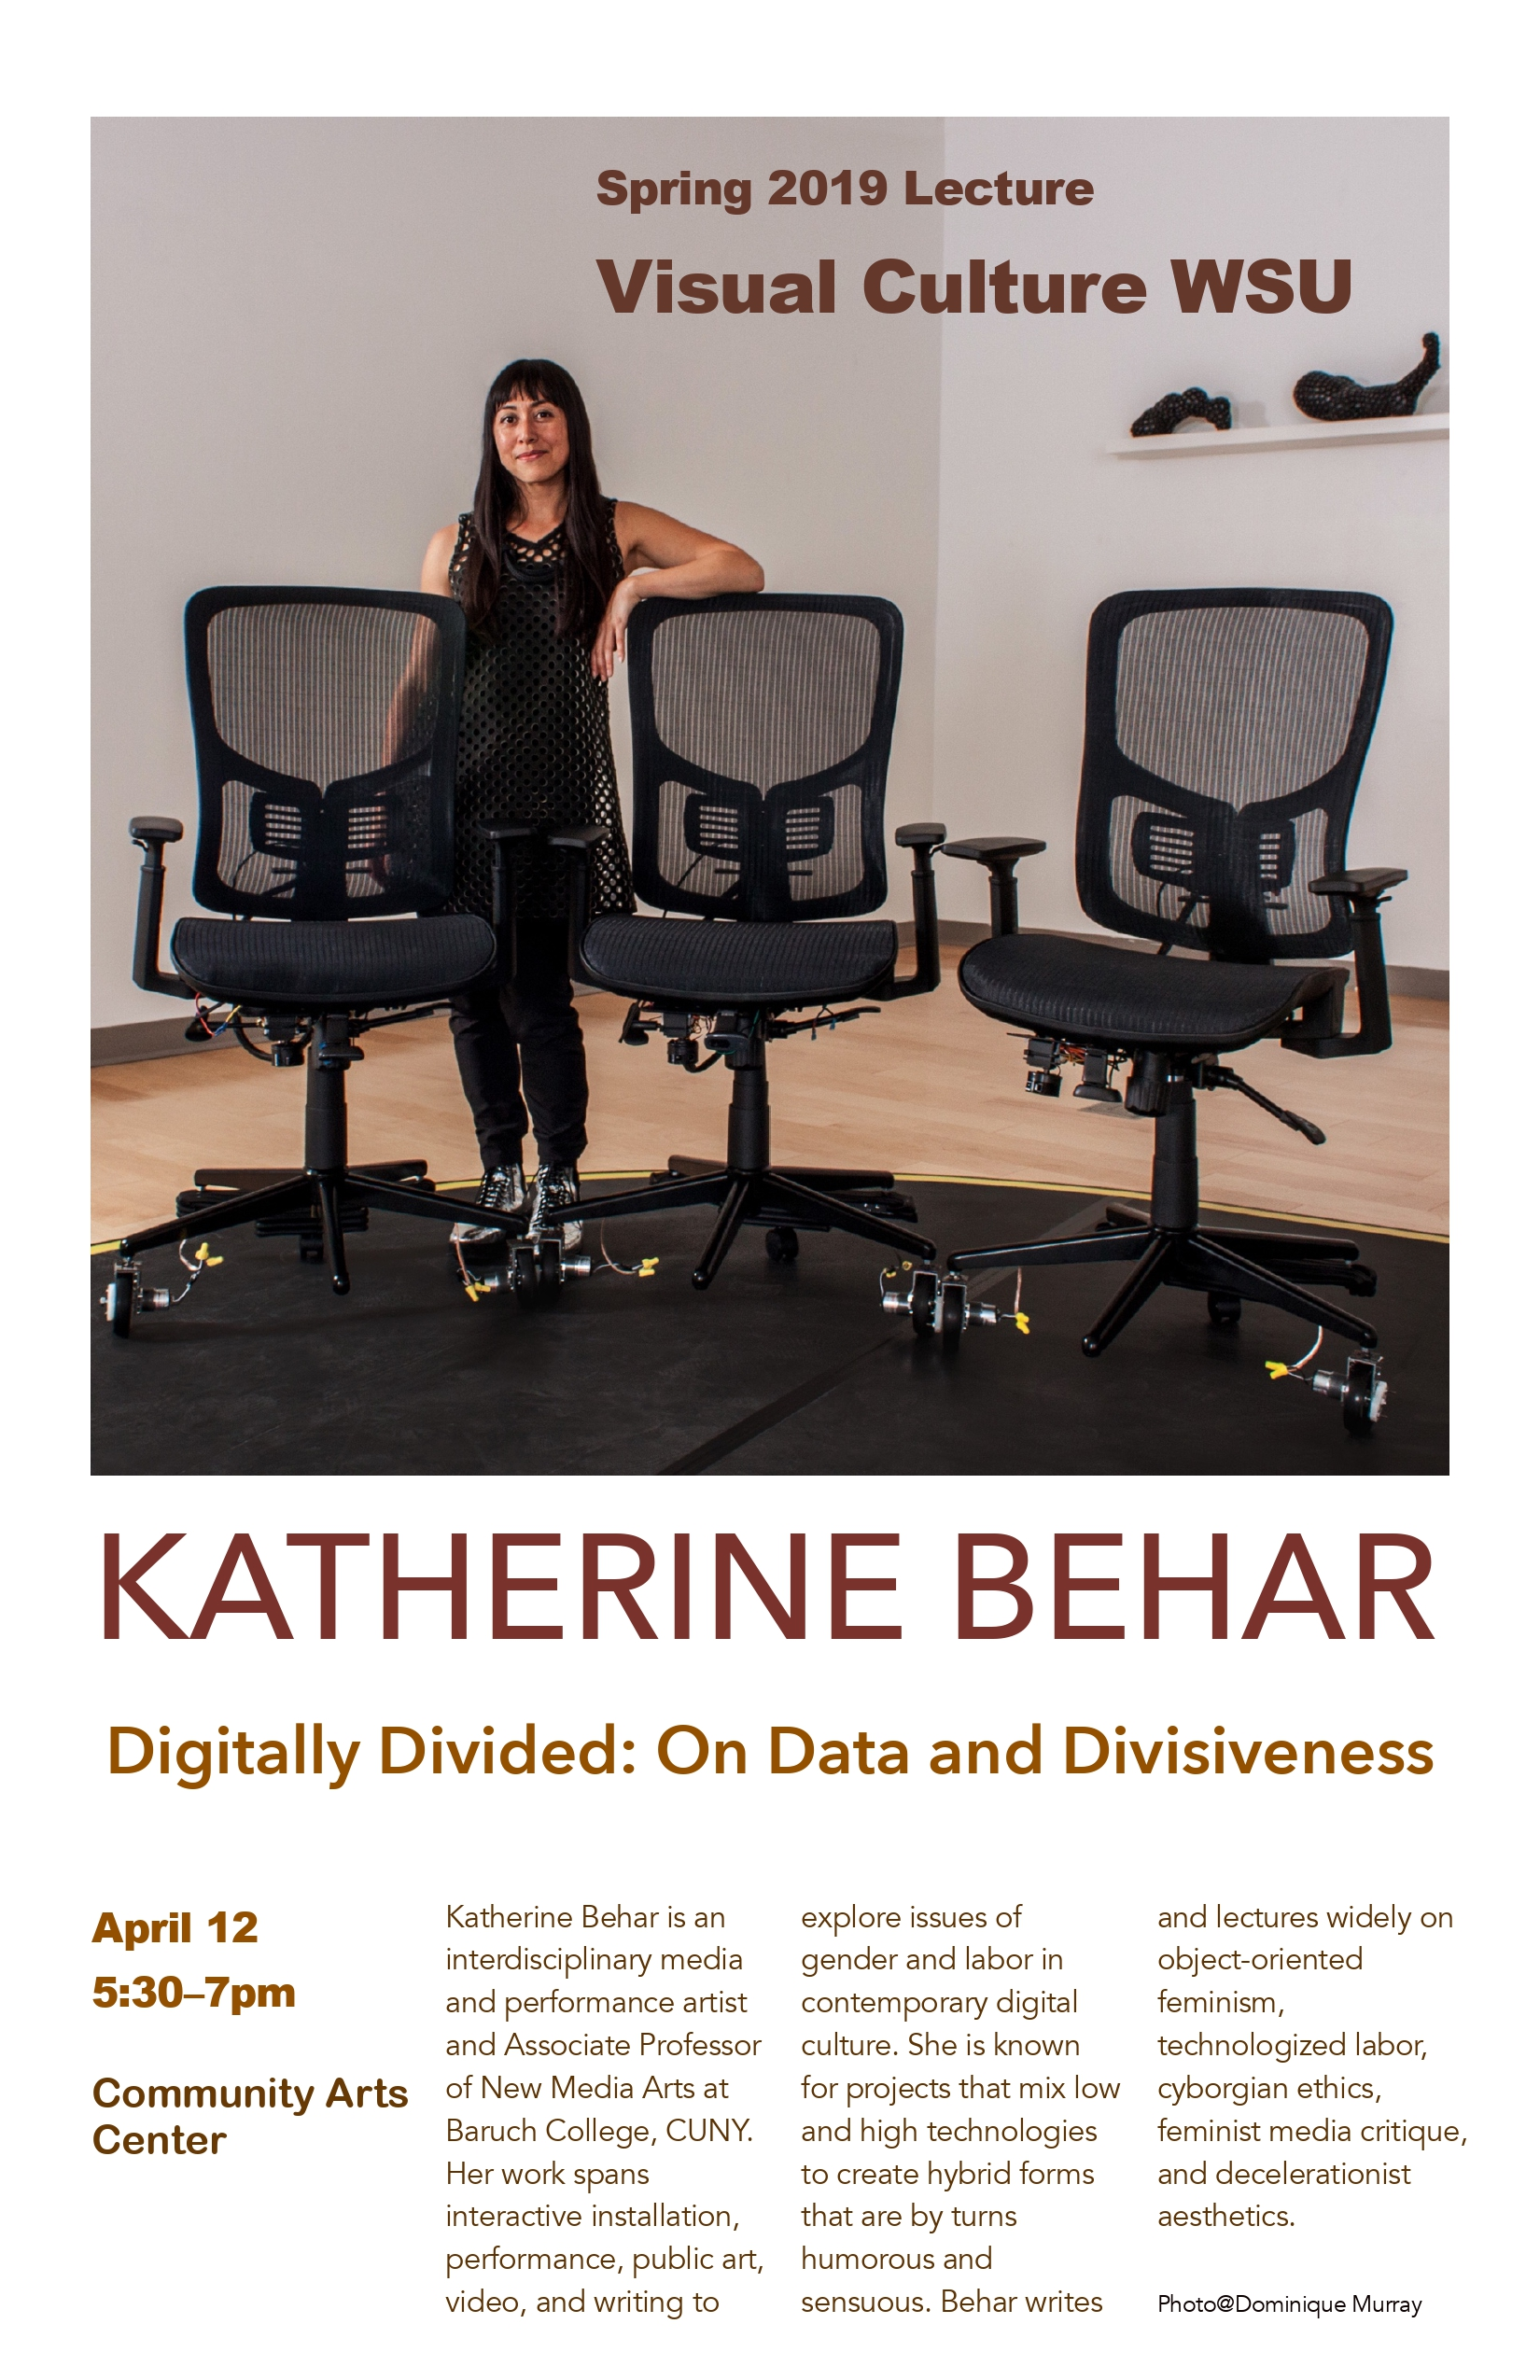 See art from Katherine Behar below and at   katherinebehar.com  .